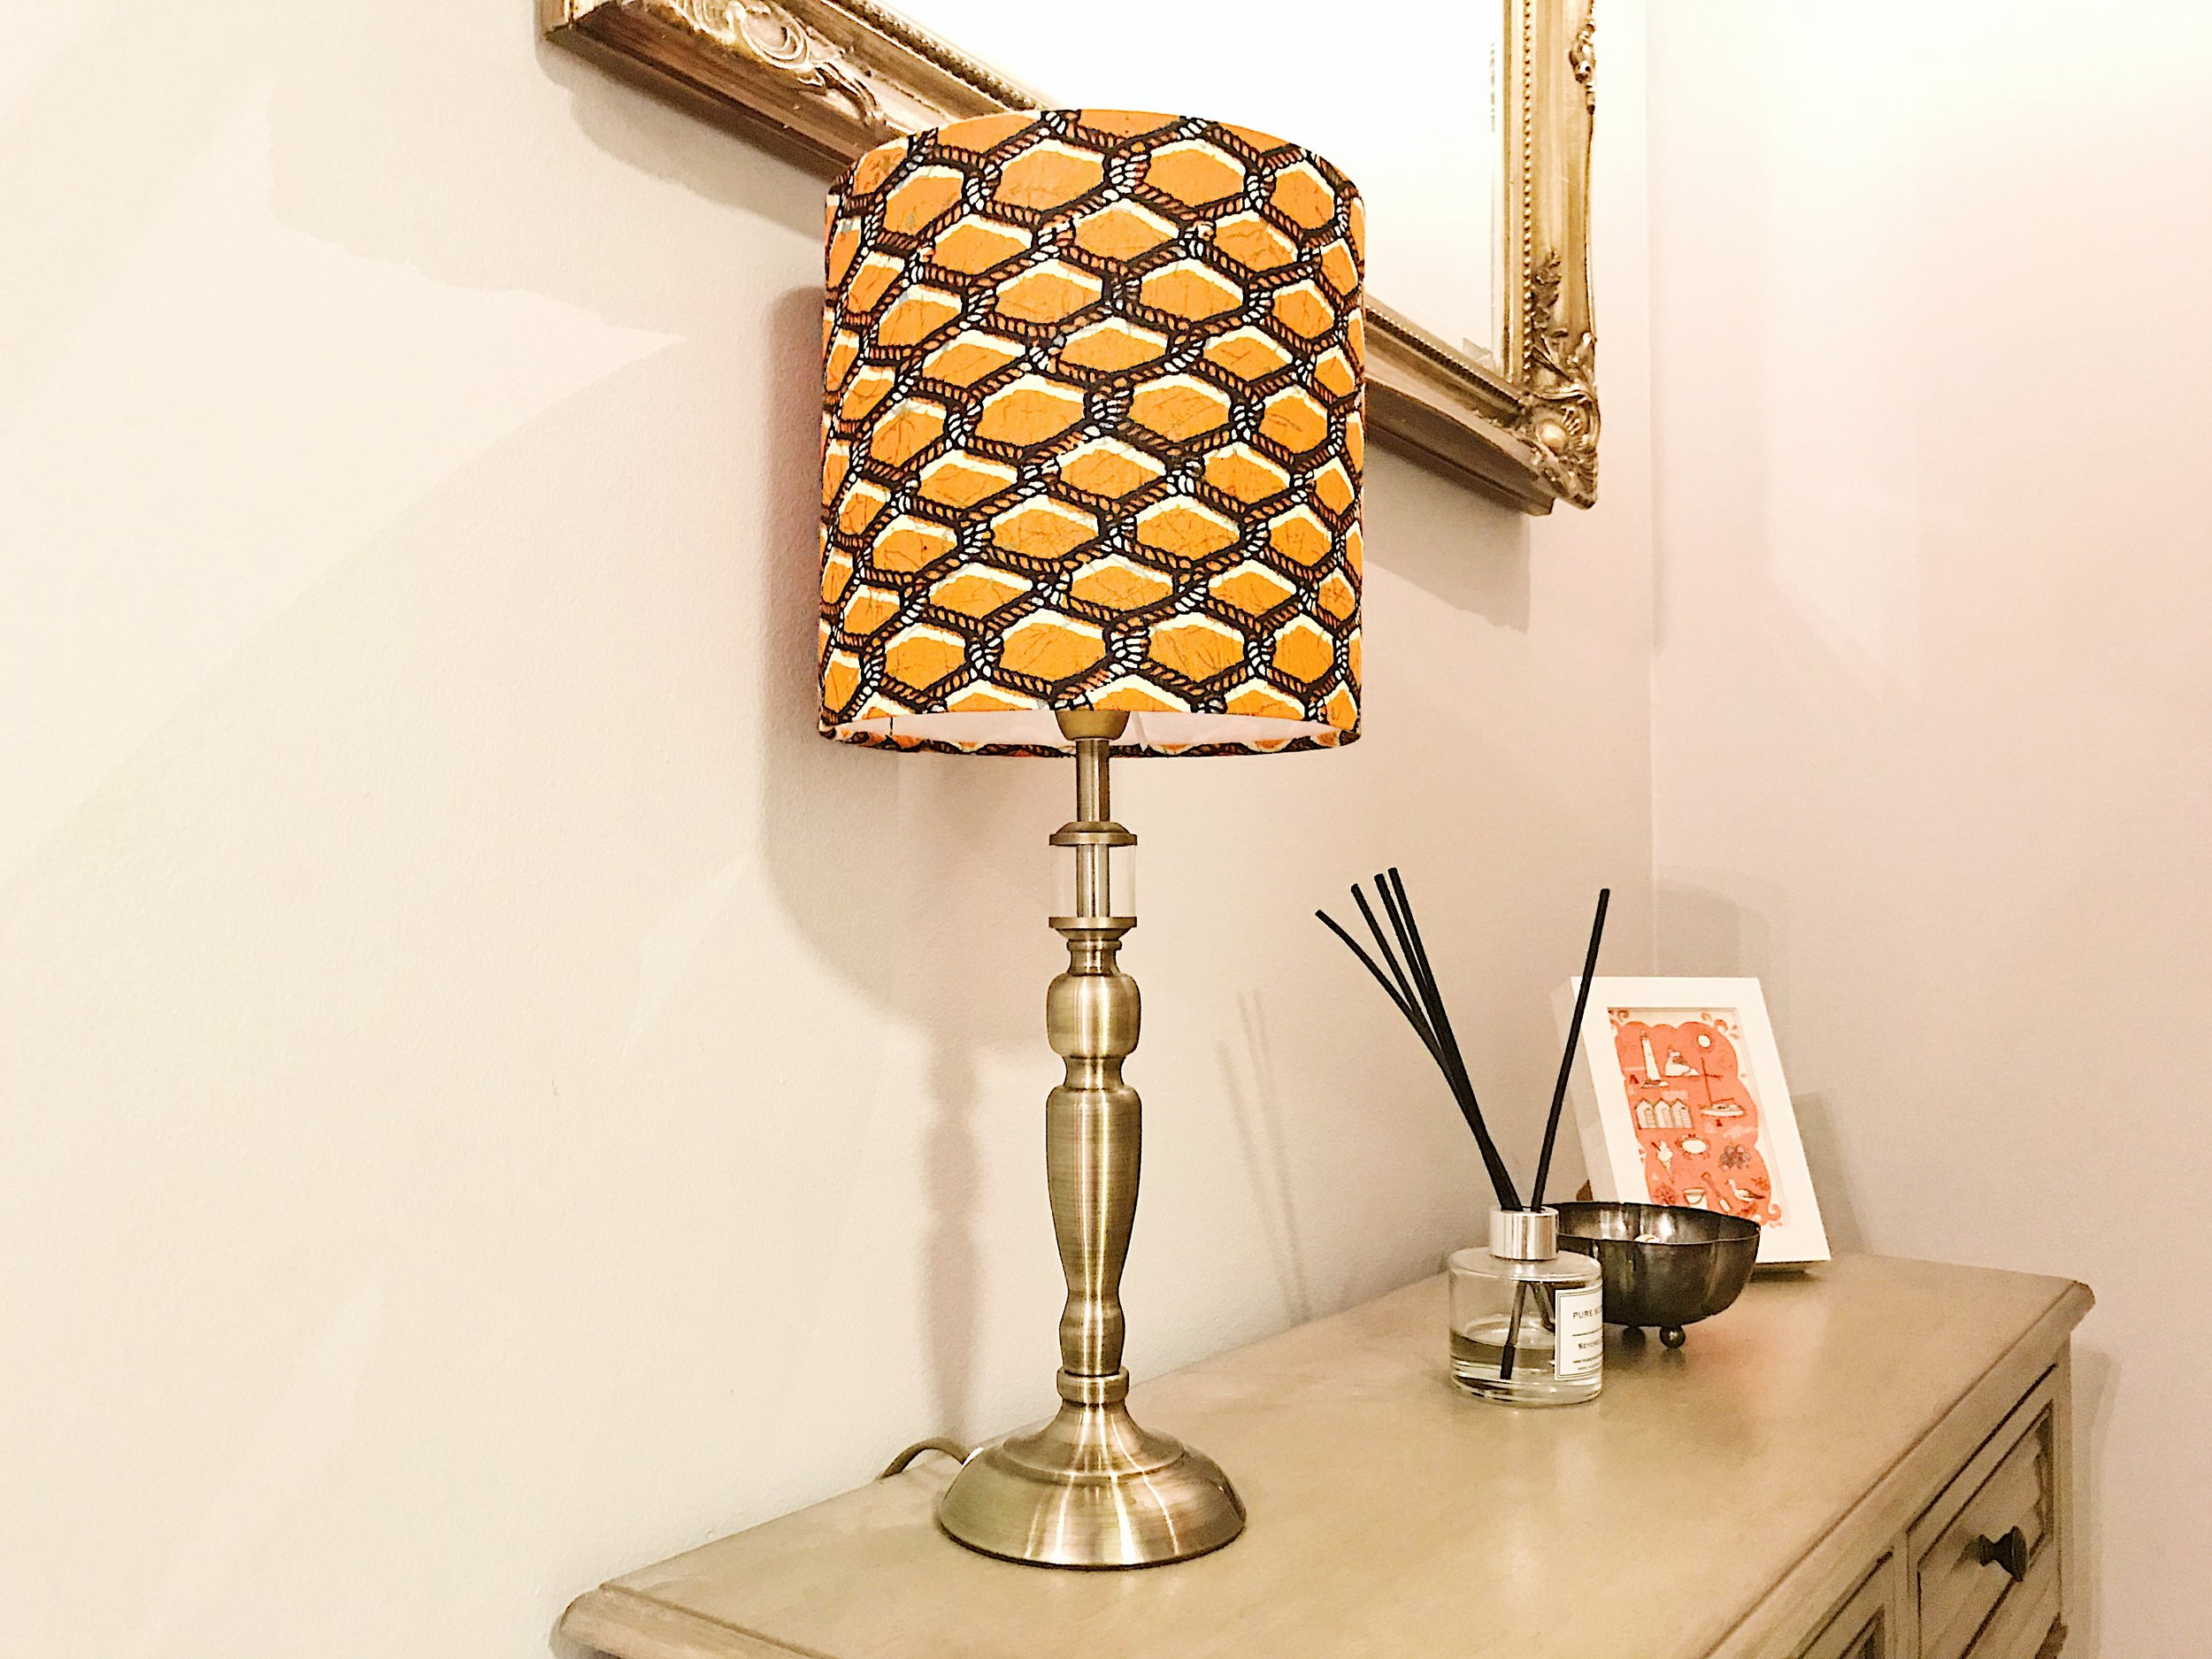 Detola and Geek's Ankara Lampshade in my home